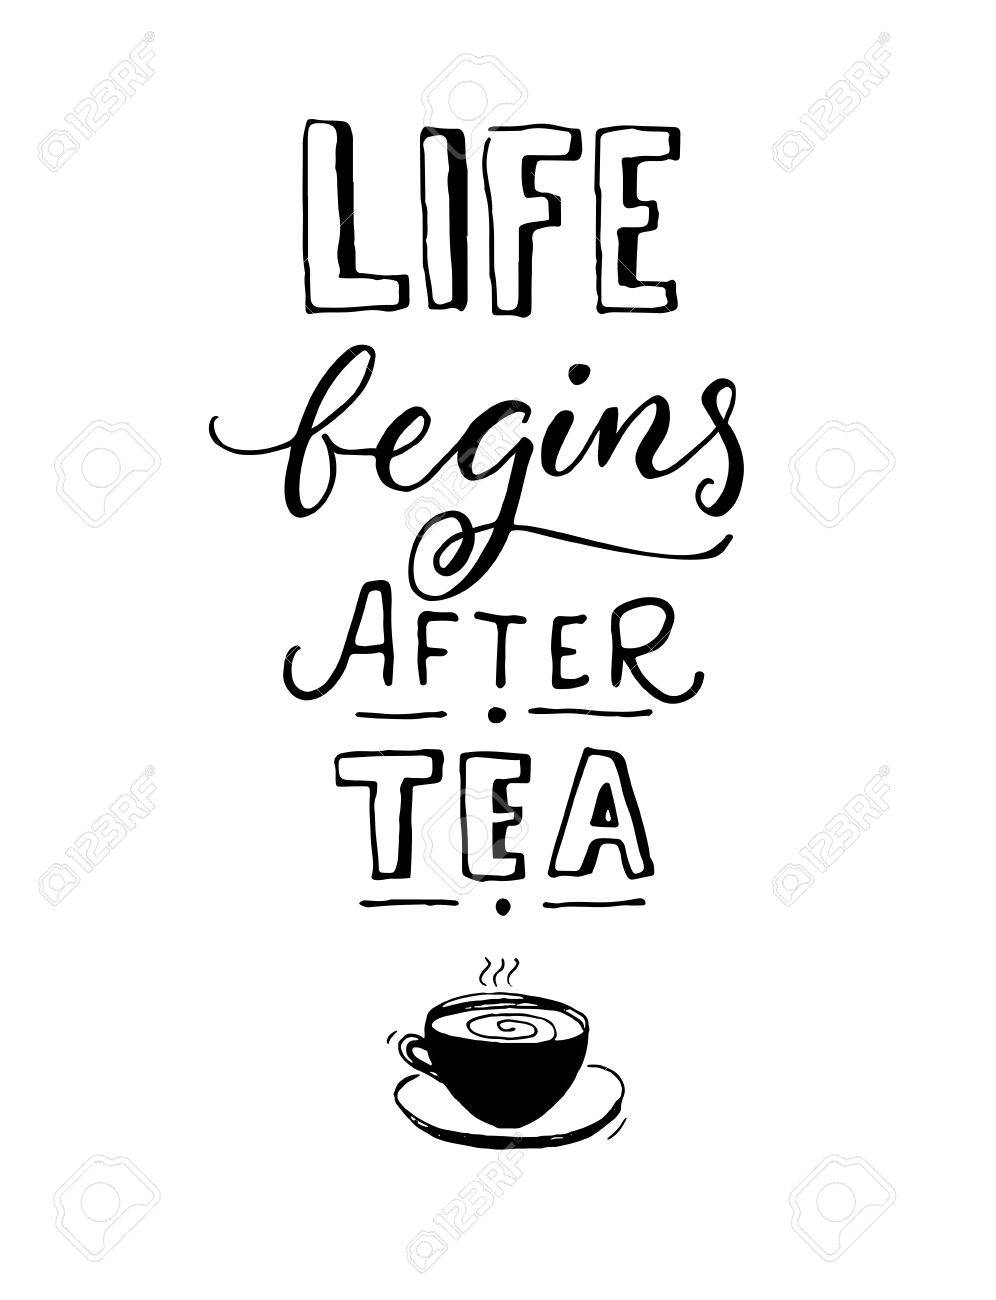 life begins after tea black and white cafe poster design with